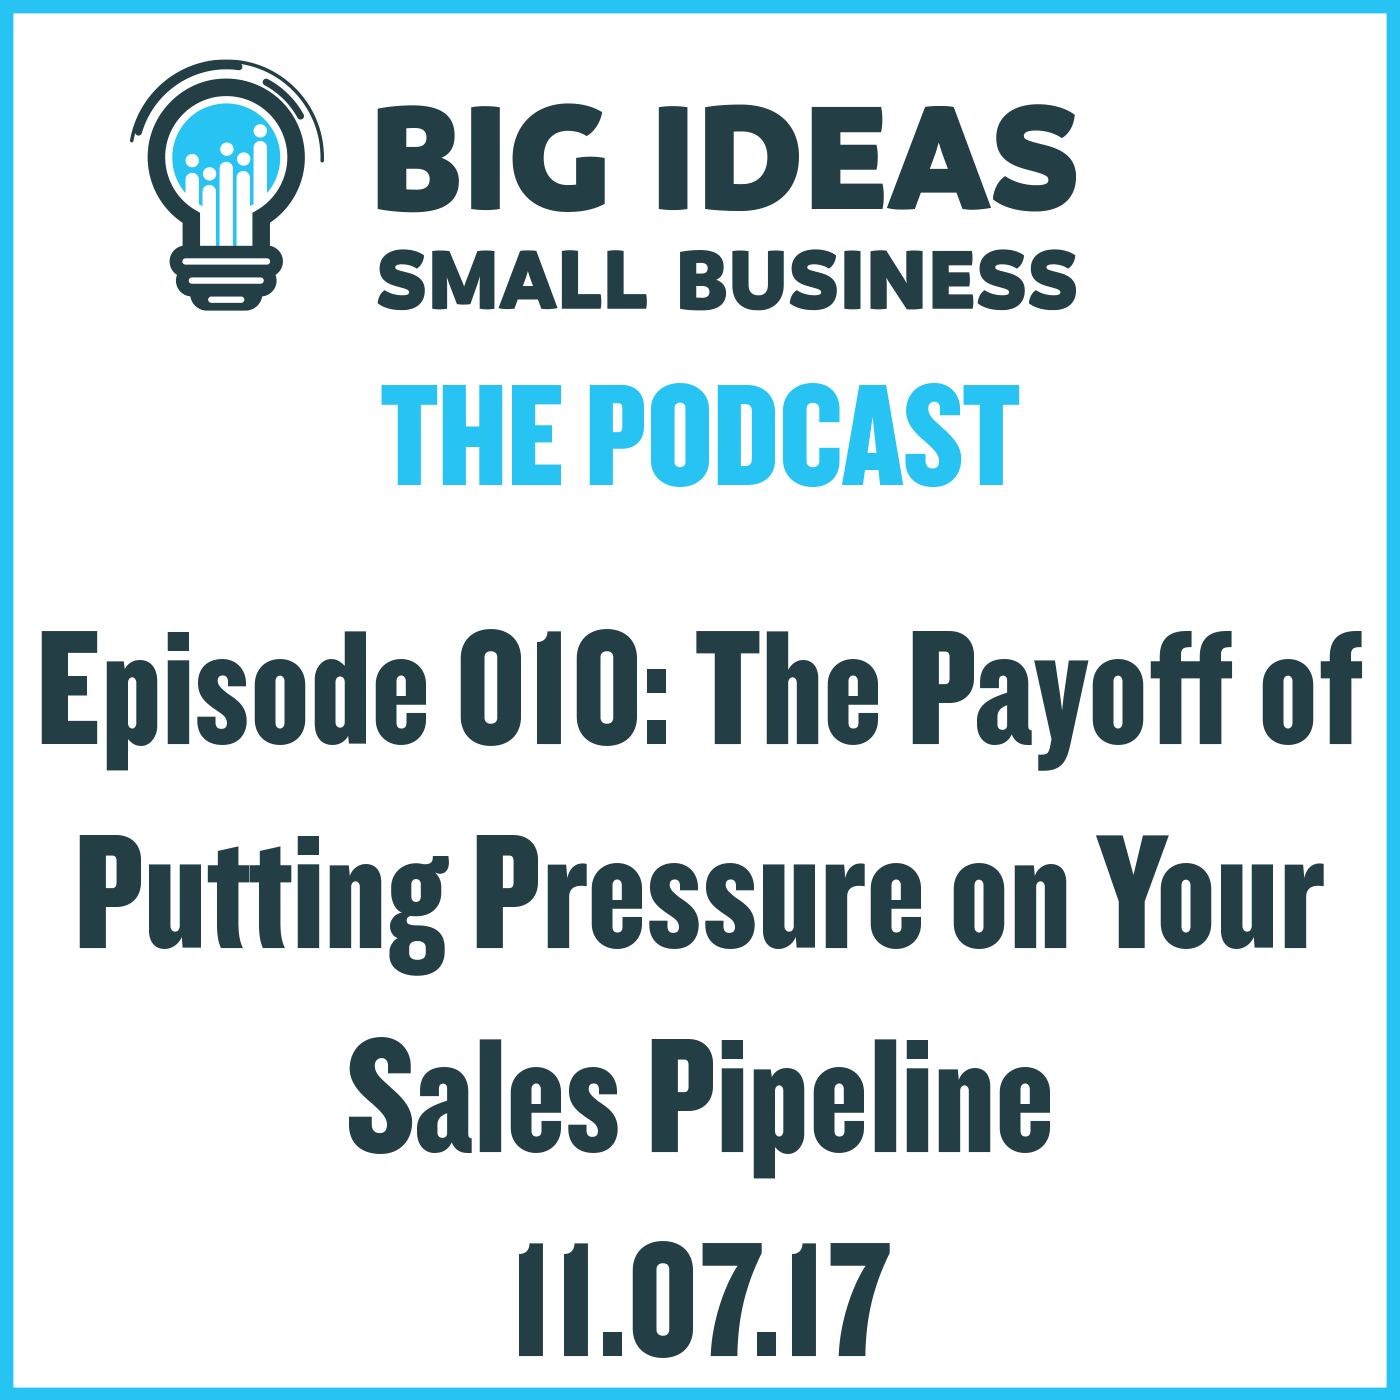 The Payoff of Putting Pressure on Your Sales Pipeline – Big Ideas Small Business Podcast